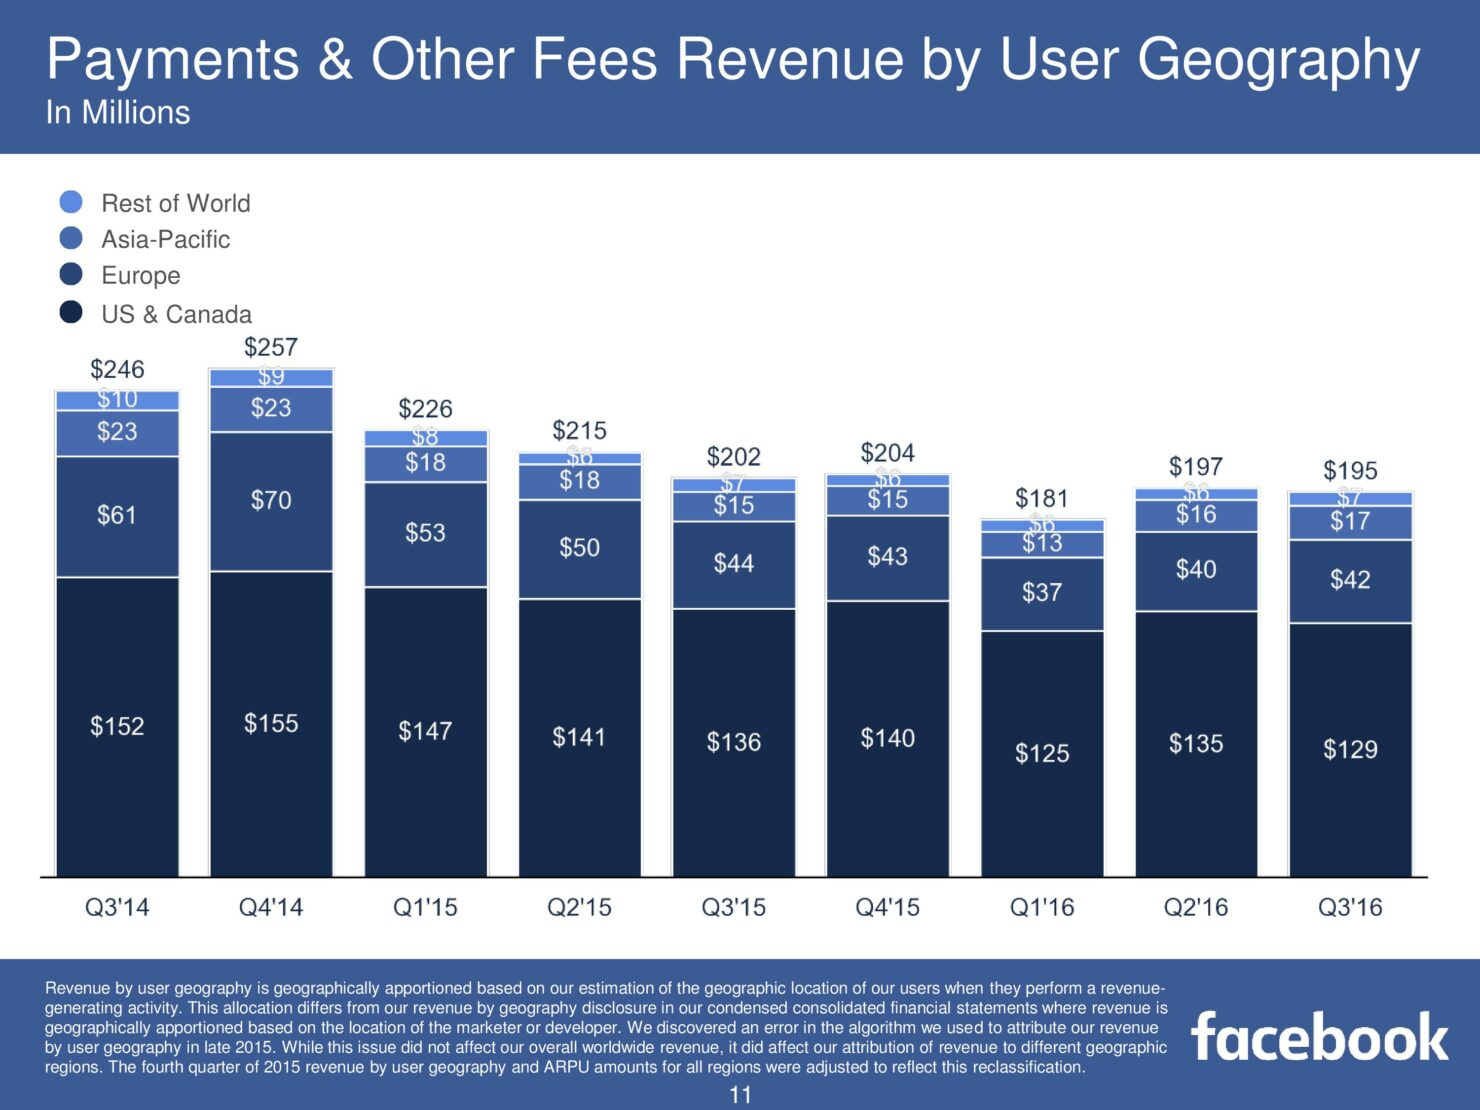 fb-q316-earnings-slides-page-011